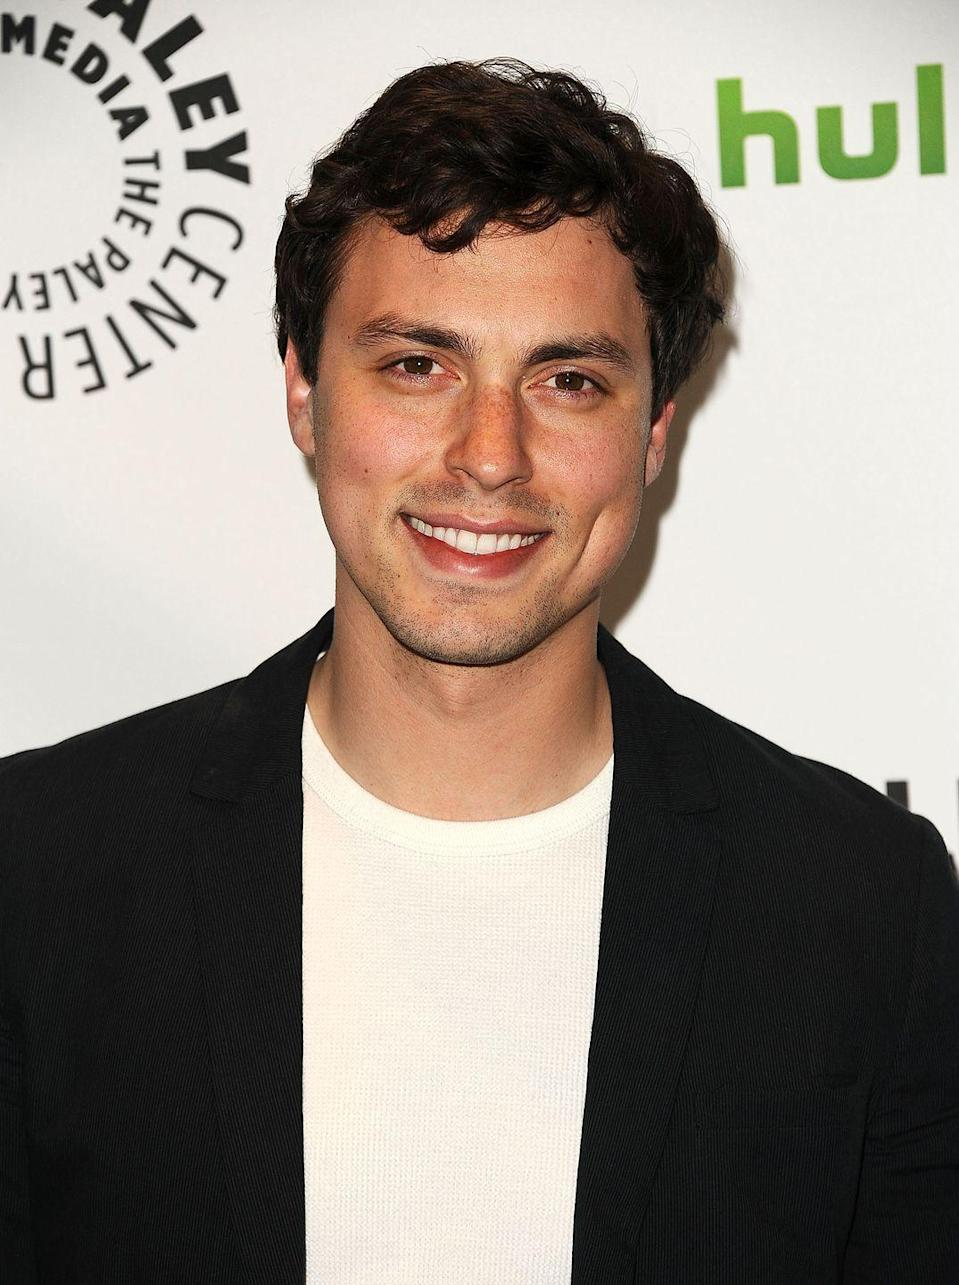 "<p>Lance Sweets was beloved on <em>Bones</em> for 10 seasons. However, Daley asked to be killed off when the opportunity to direct came around. Daley went on to <a href=""https://tvline.com/2014/10/02/john-francis-daley-interview-bones-why-did-he-leave-sweets/"" rel=""nofollow noopener"" target=""_blank"" data-ylk=""slk:remake the movie National Lampoon's Vacation"" class=""link rapid-noclick-resp"">remake the movie National Lampoon's Vacation</a> to kick off his directorial career.</p>"